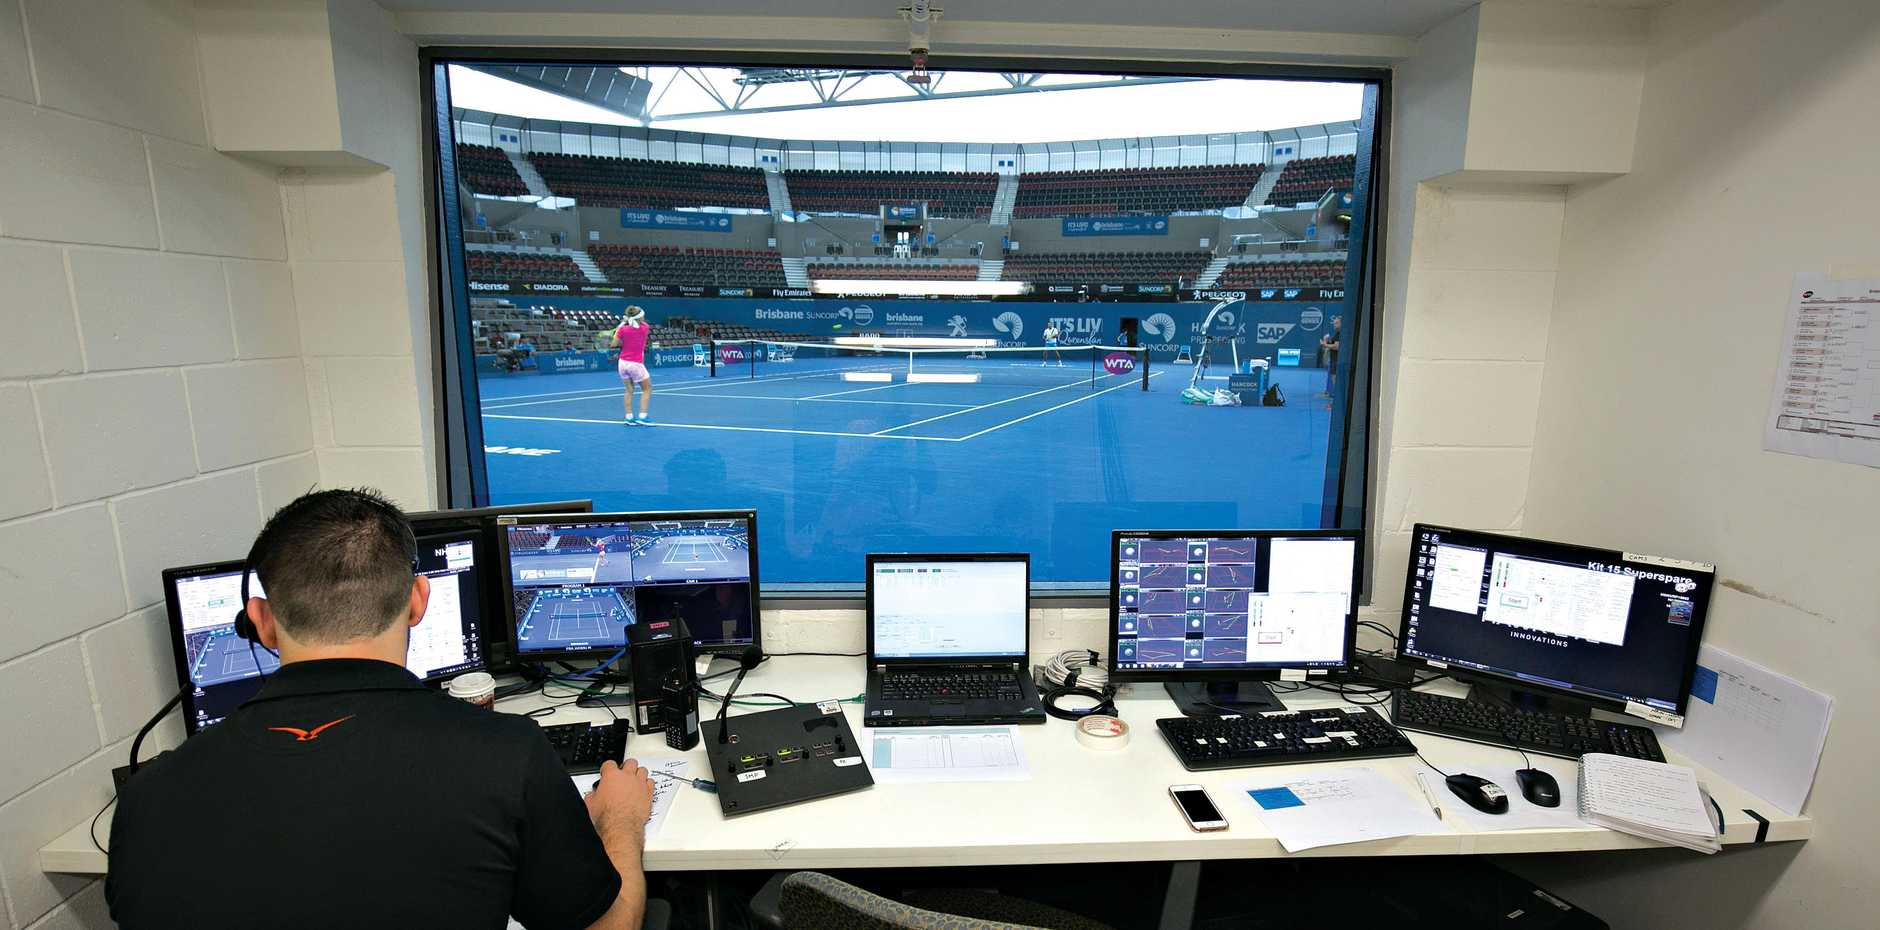 The technical aspects of the game are well looked after by staff in the Hawke-Eye room.